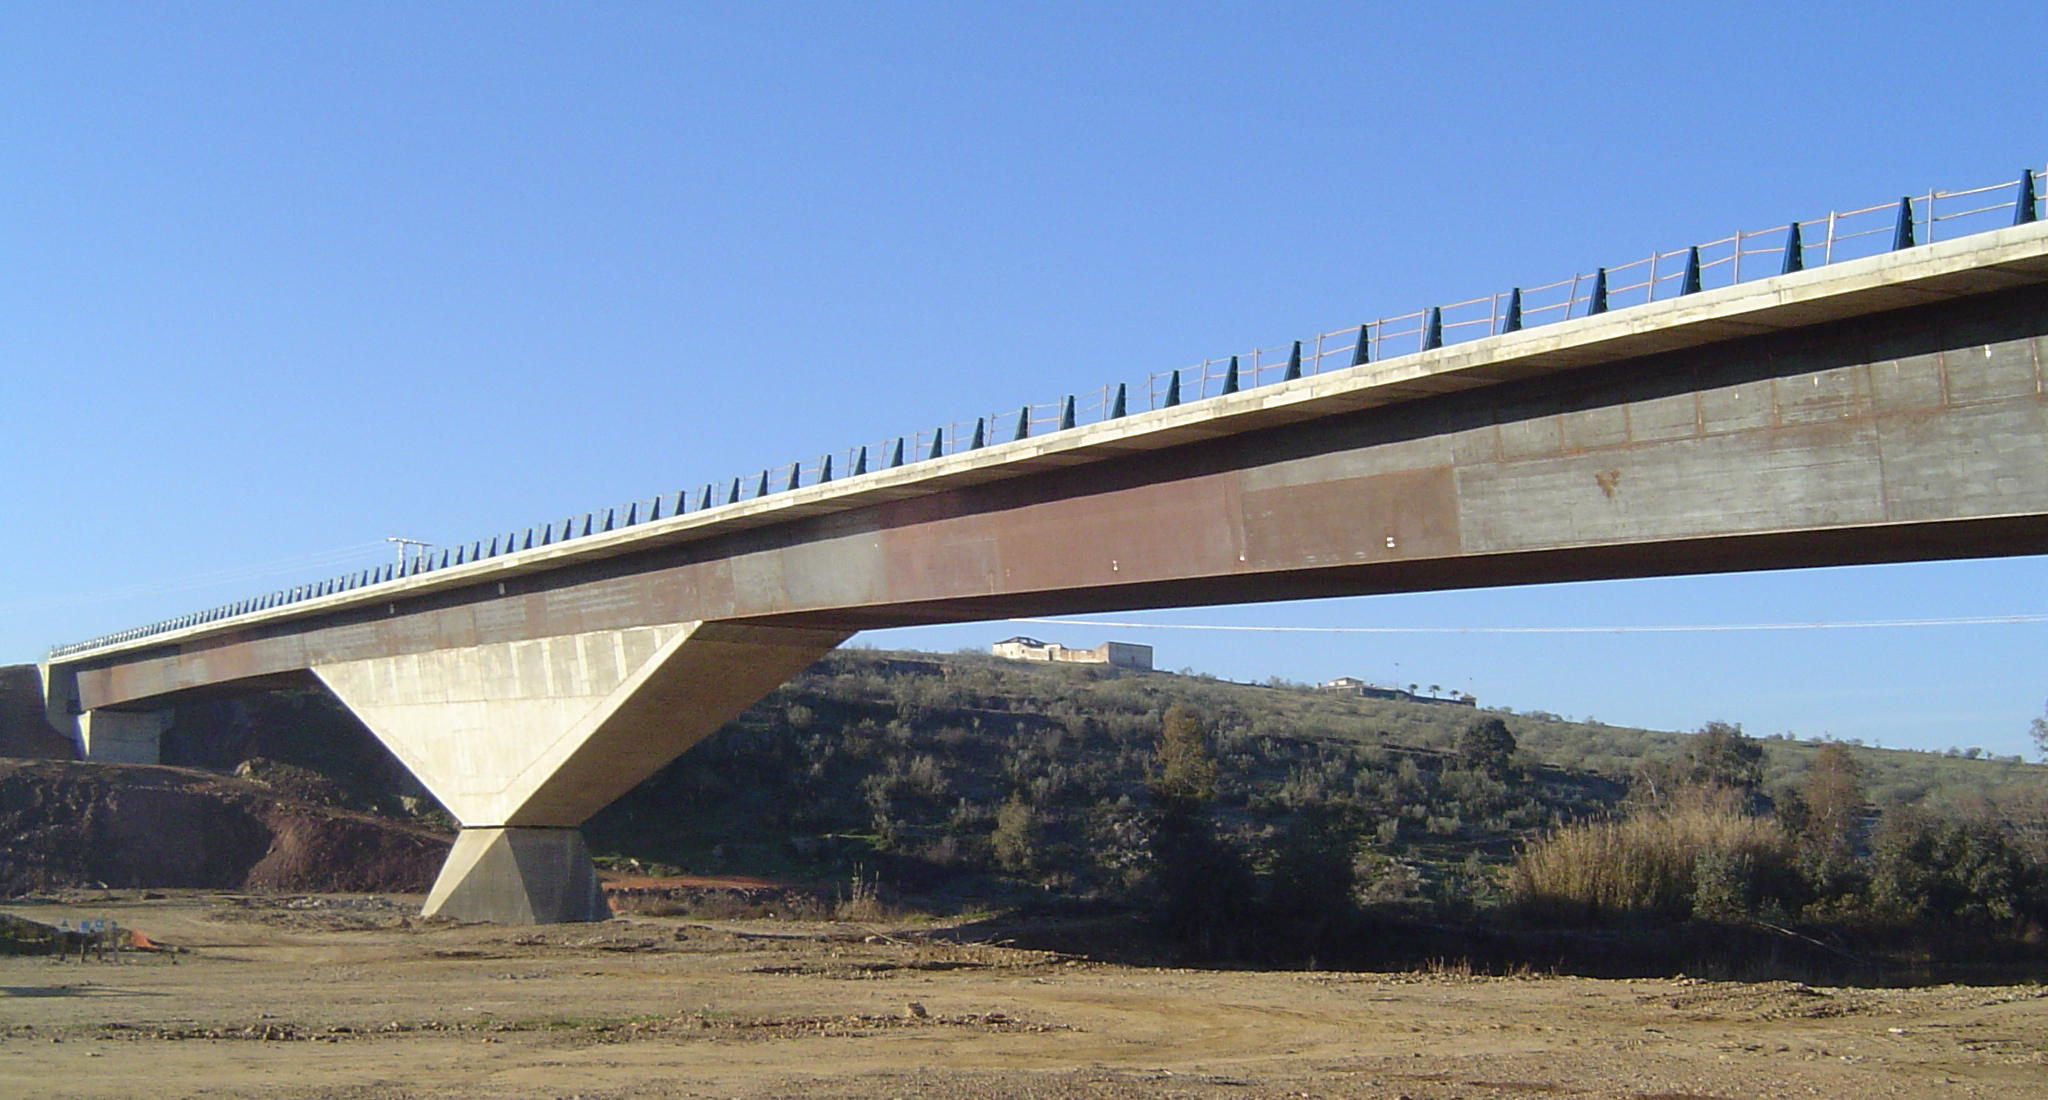 CONSTRUCTION OF BRIDGES AND ROADS